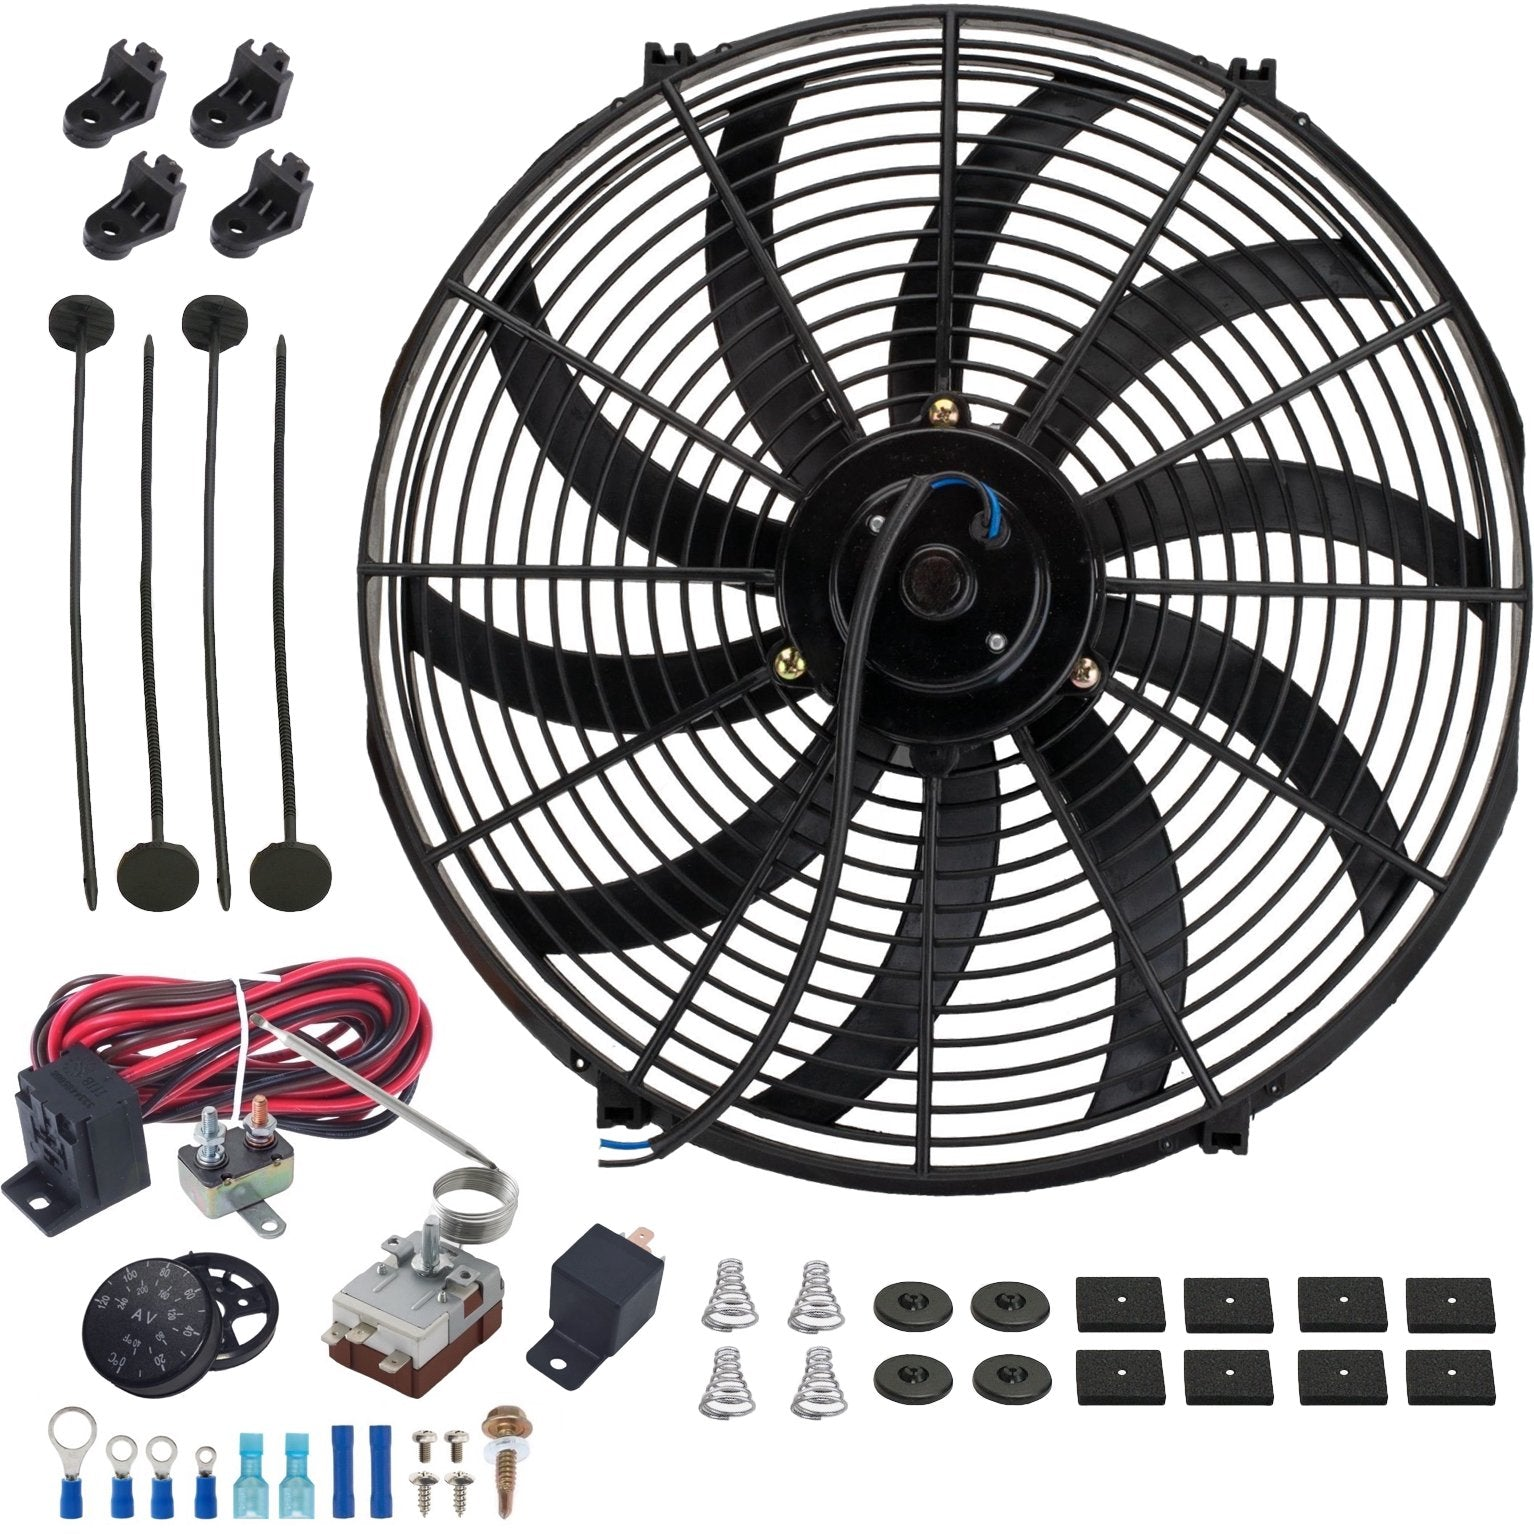 "16"" Inch Slim Automotive Electric Cooling Fan Adjustable Radiator Fin Probe Thermostat Switch Kit-Single Electric Fans-American Volt"